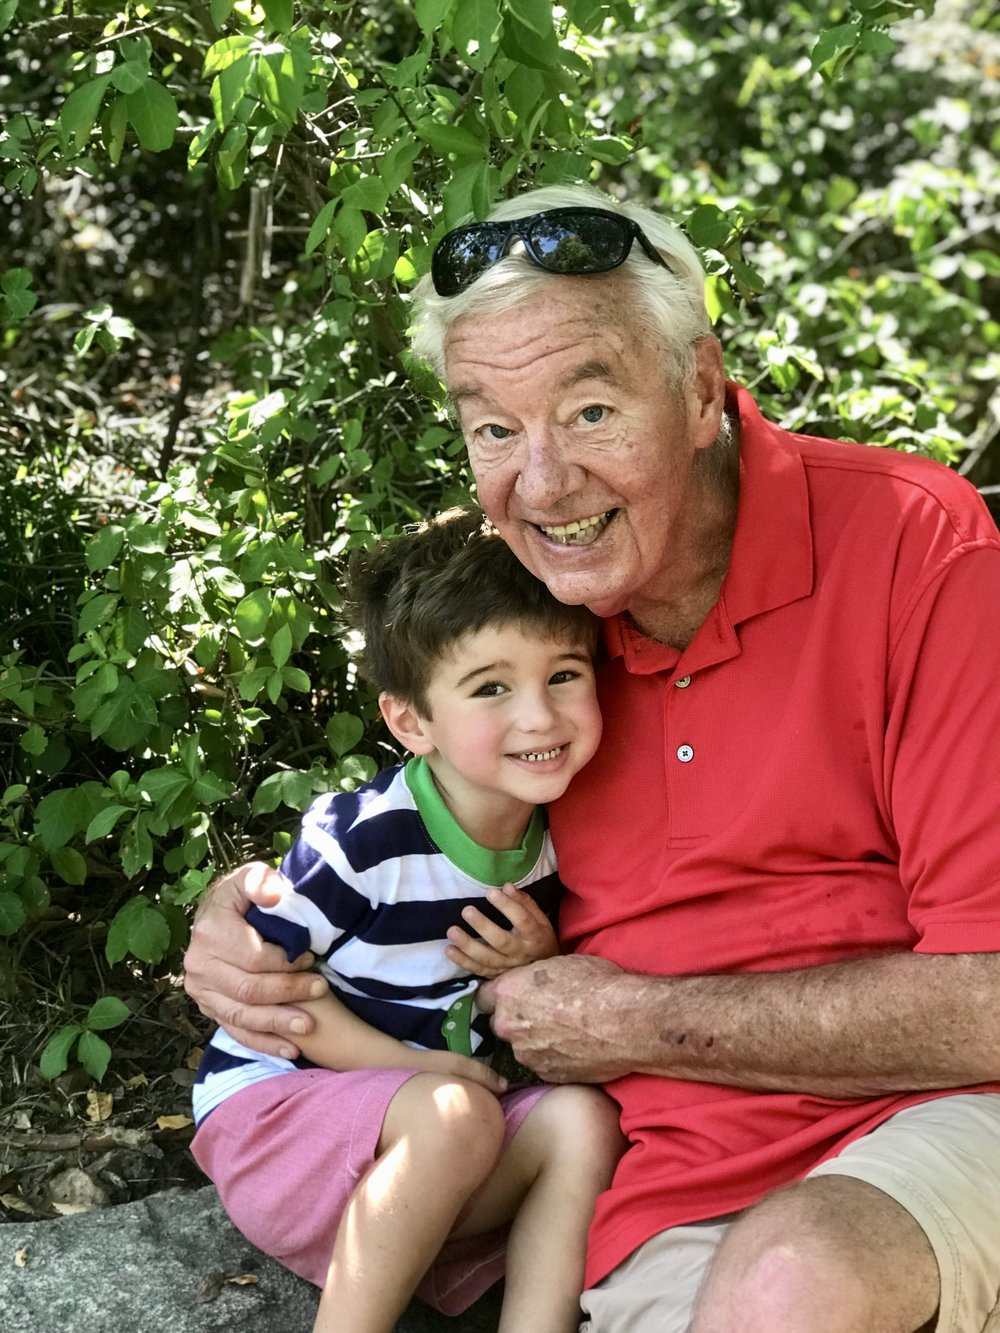 Papaw joins us most zoo days